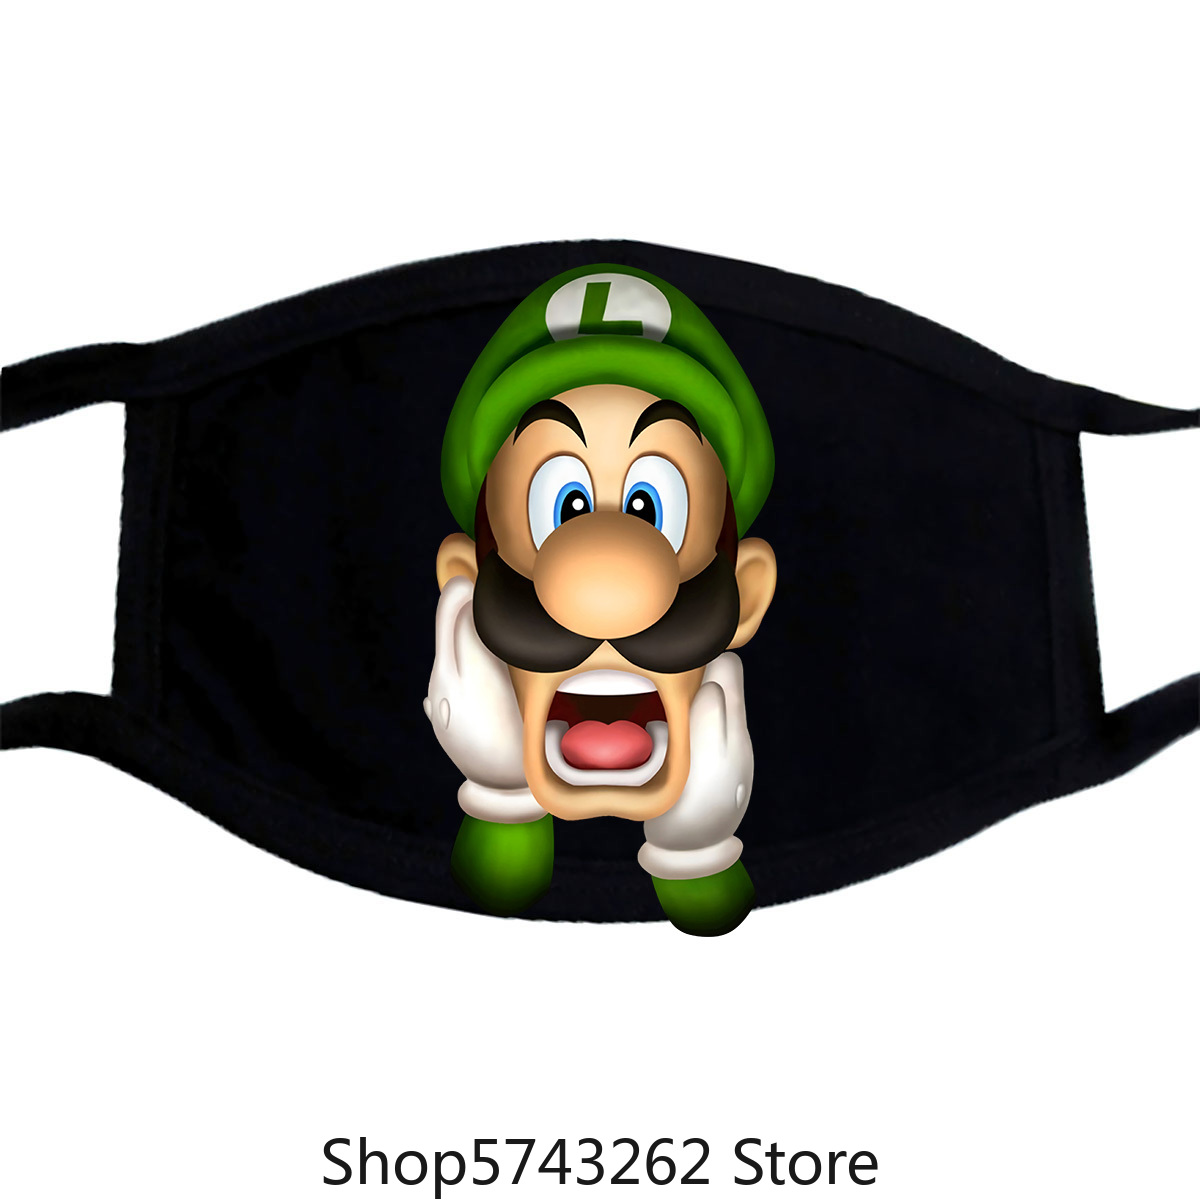 Luigi S Mansion Luigi Video Game Mask Washable Reusable Mask For Unisex Black